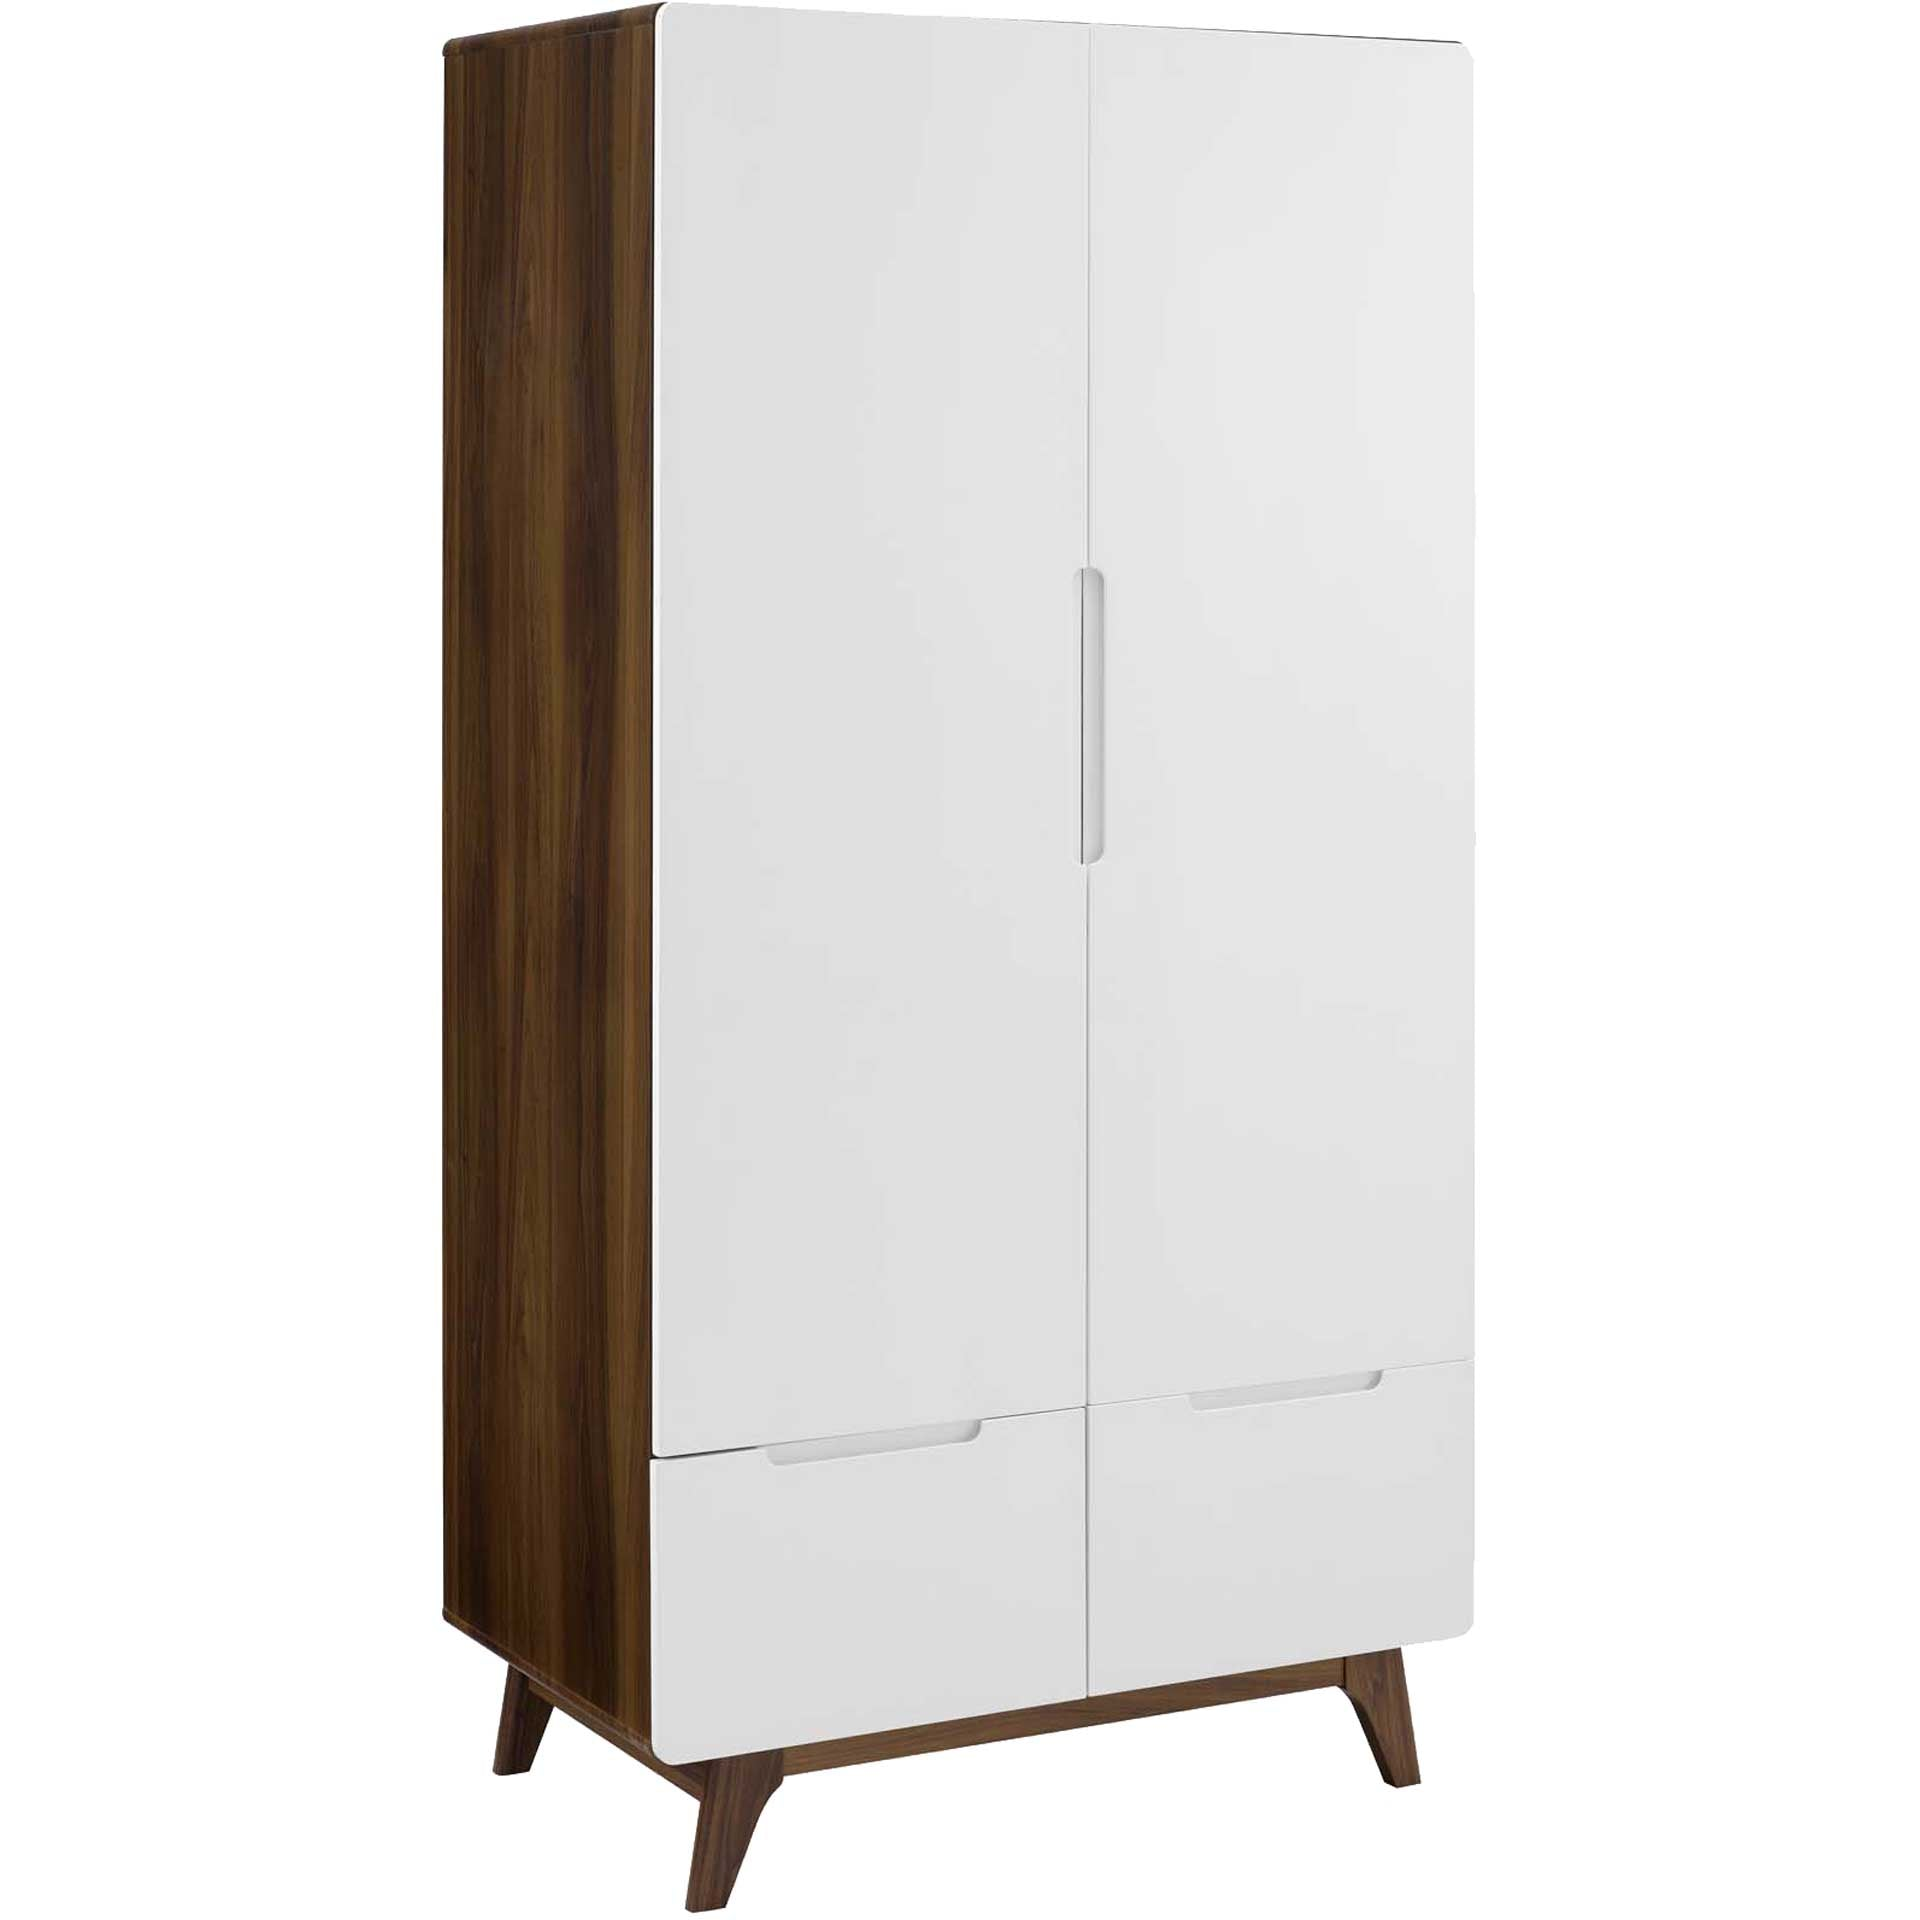 Orion Wood Wardrobe Cabinet Walnut/White